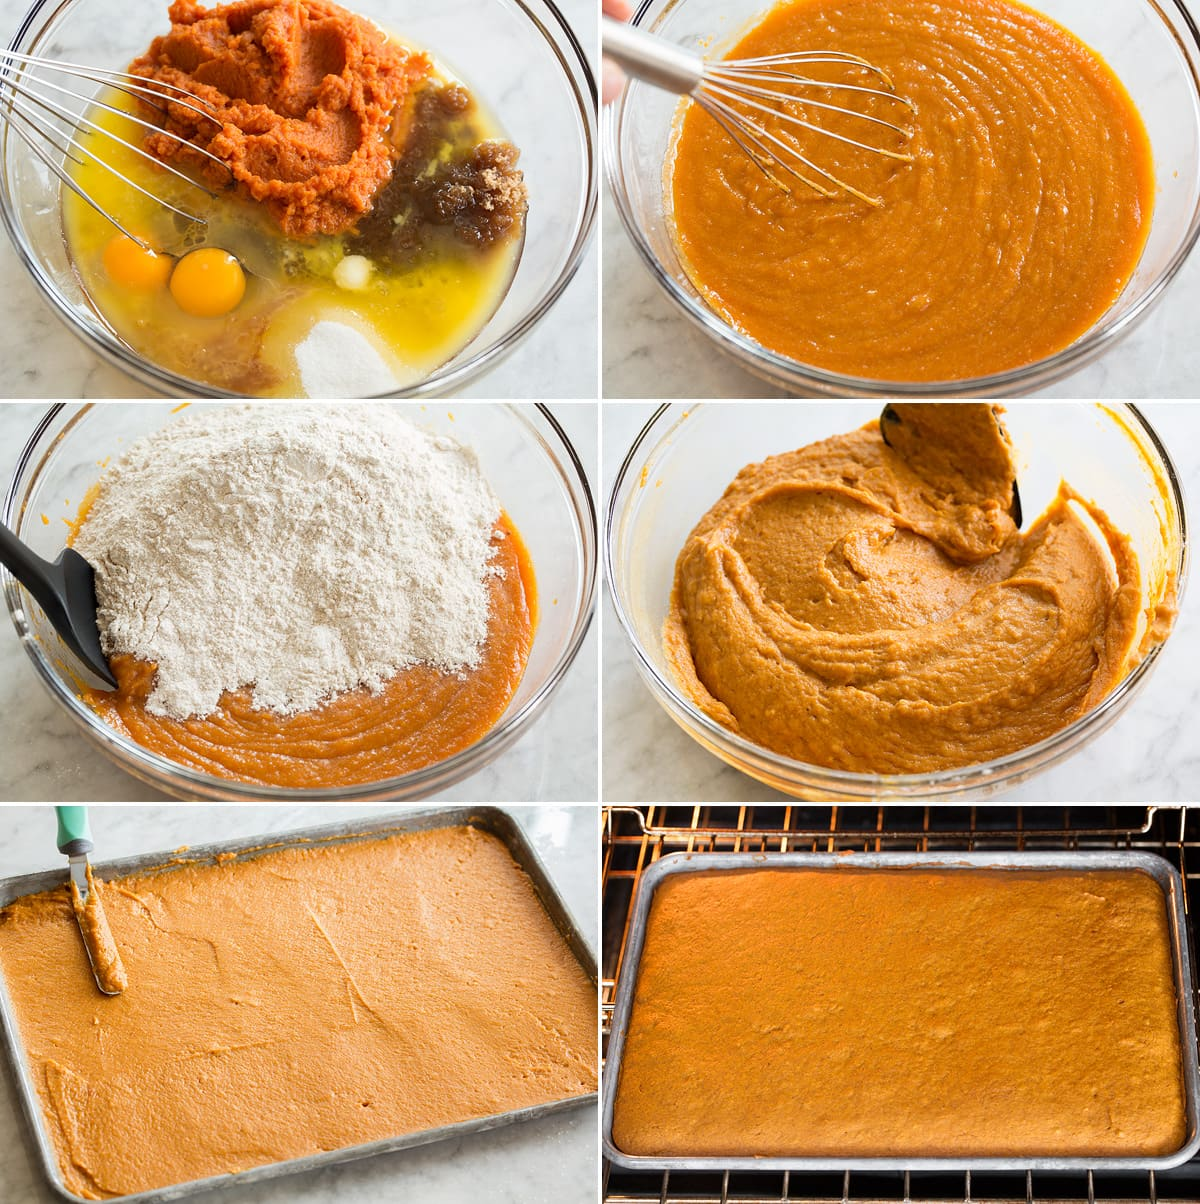 Collage of six photos showing steps to make pumpkin bars. Includes combining wet and dry ingredients, spreading into pan, and baking.